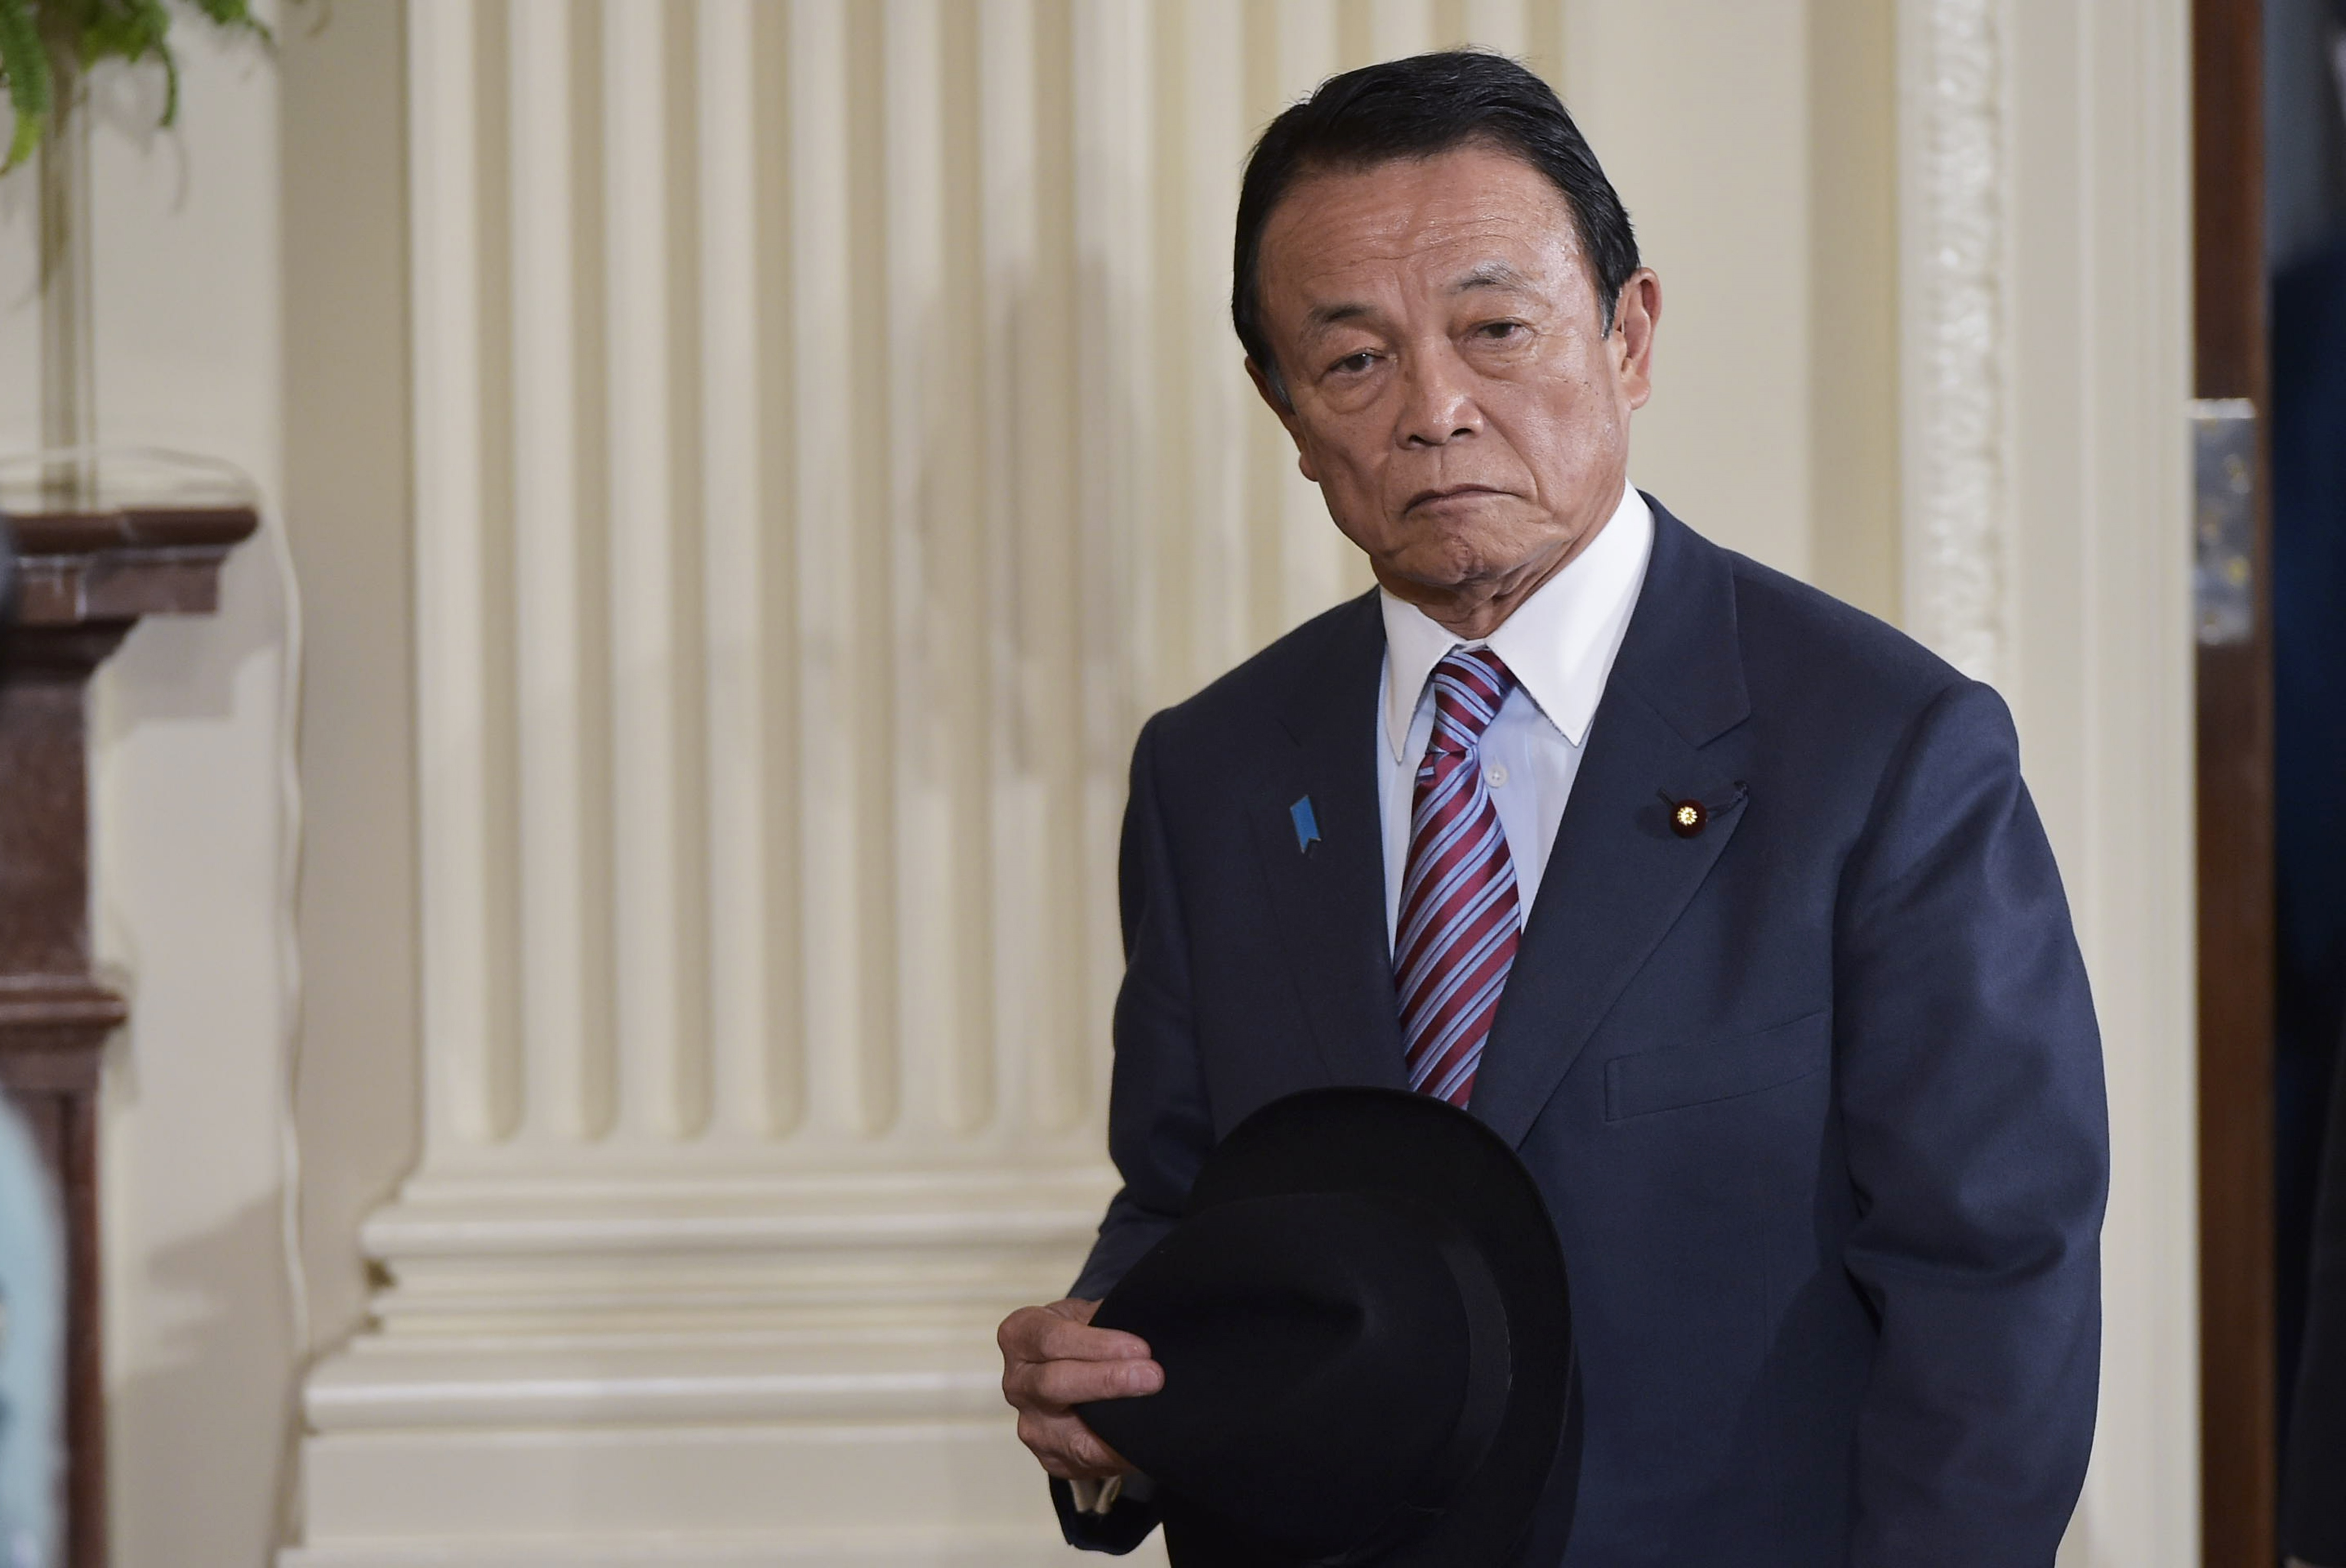 Japan's Deputy Prime Minister and Minister of Finance Taro Aso arrives for a joint press conference by US President Donald Trump and Japanese Prime Minister Shinzo Abe on February 10, 2017, at the White House in Washington, DC.